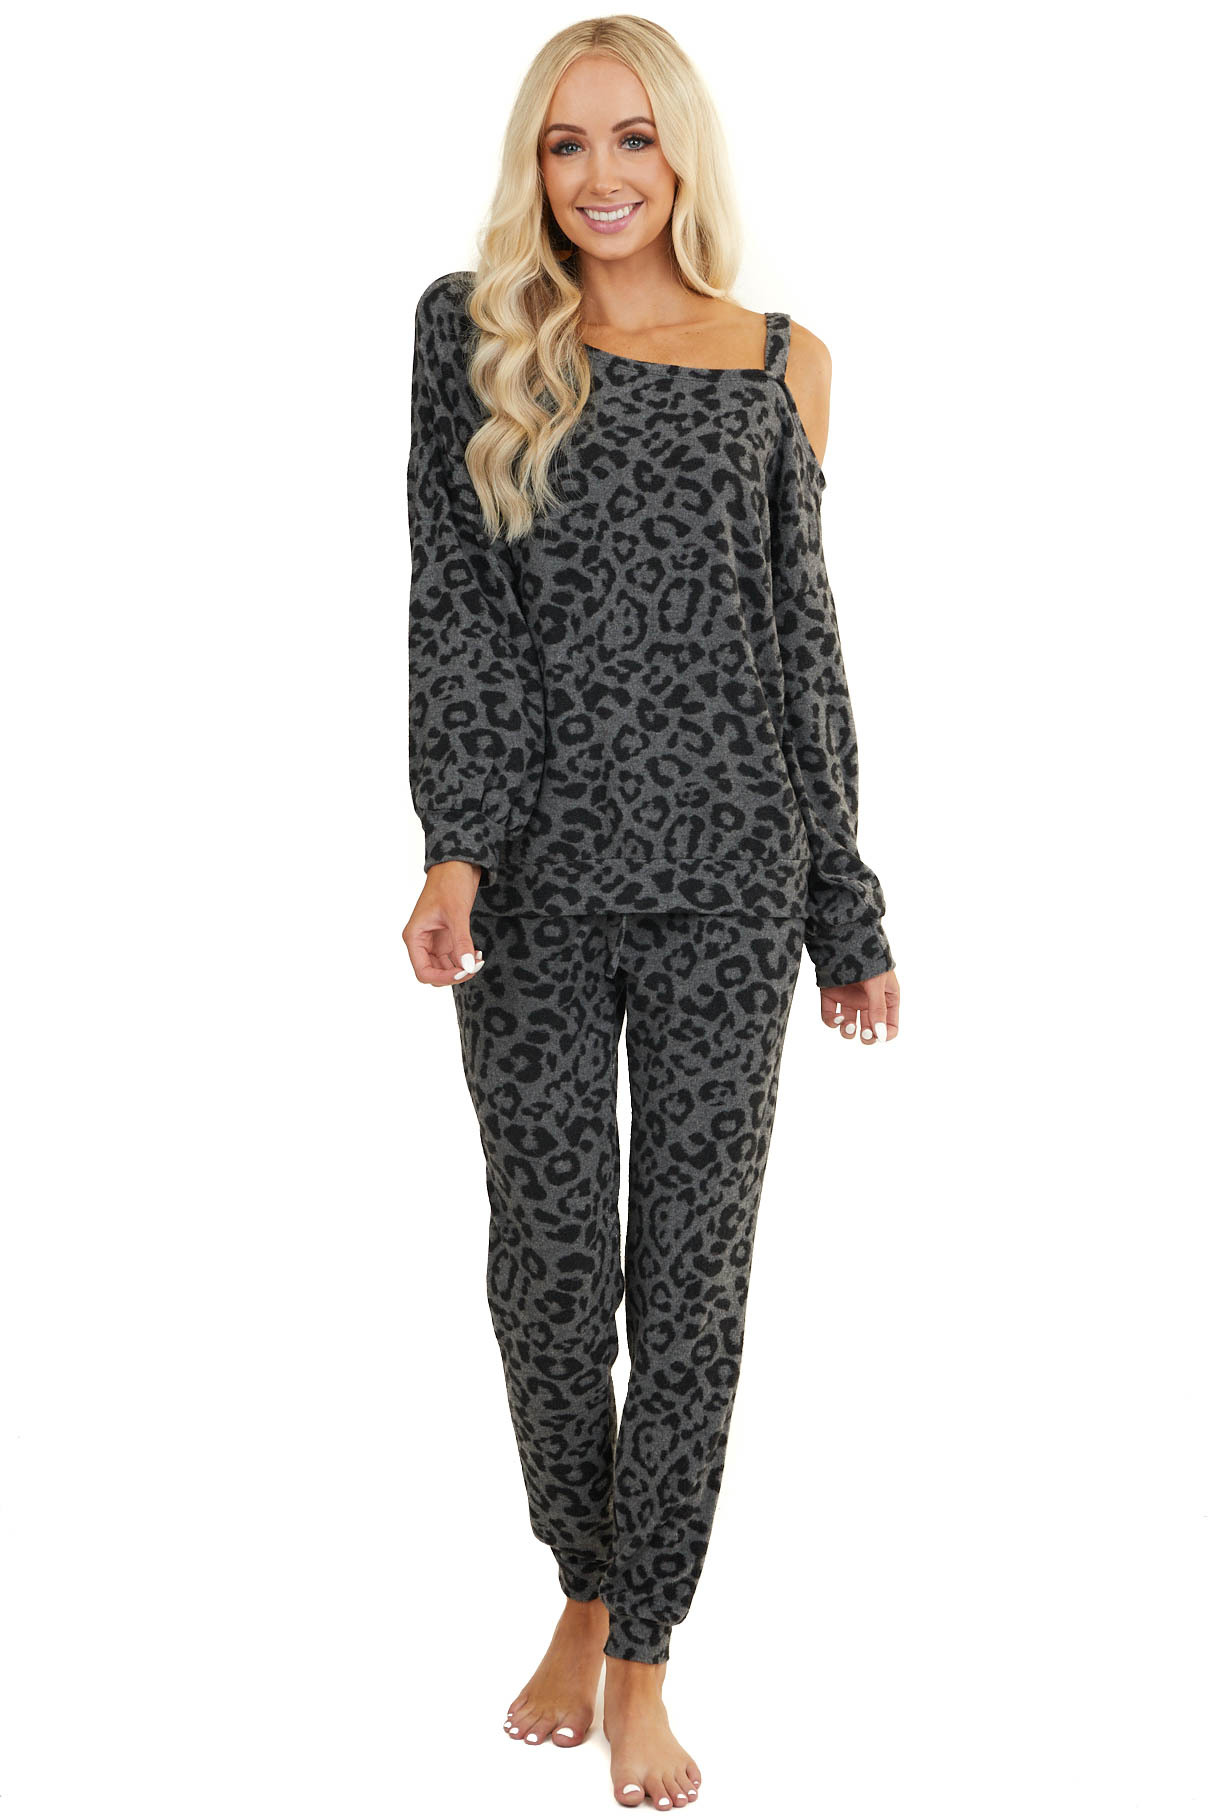 Charcoal and Grey Leopard Print Super Soft Long Sleeve Top